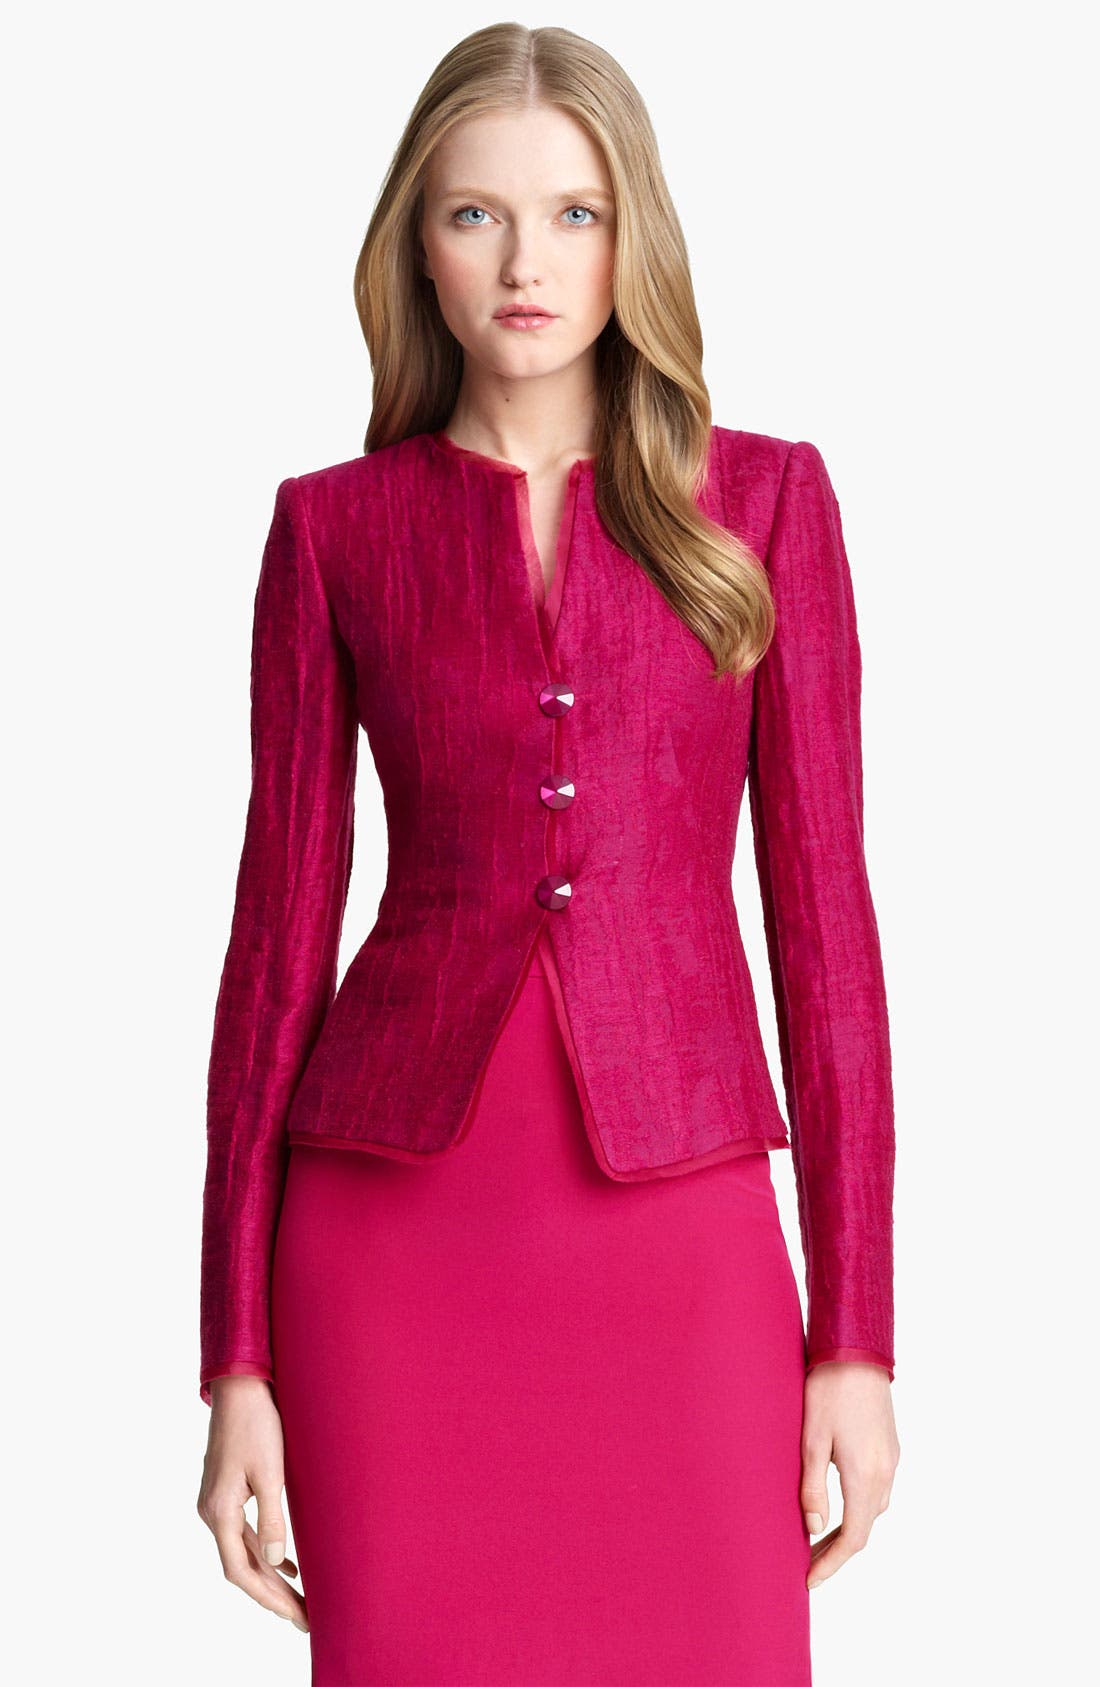 Alternate Image 1 Selected - Armani Collezioni Jewel Button Jacket